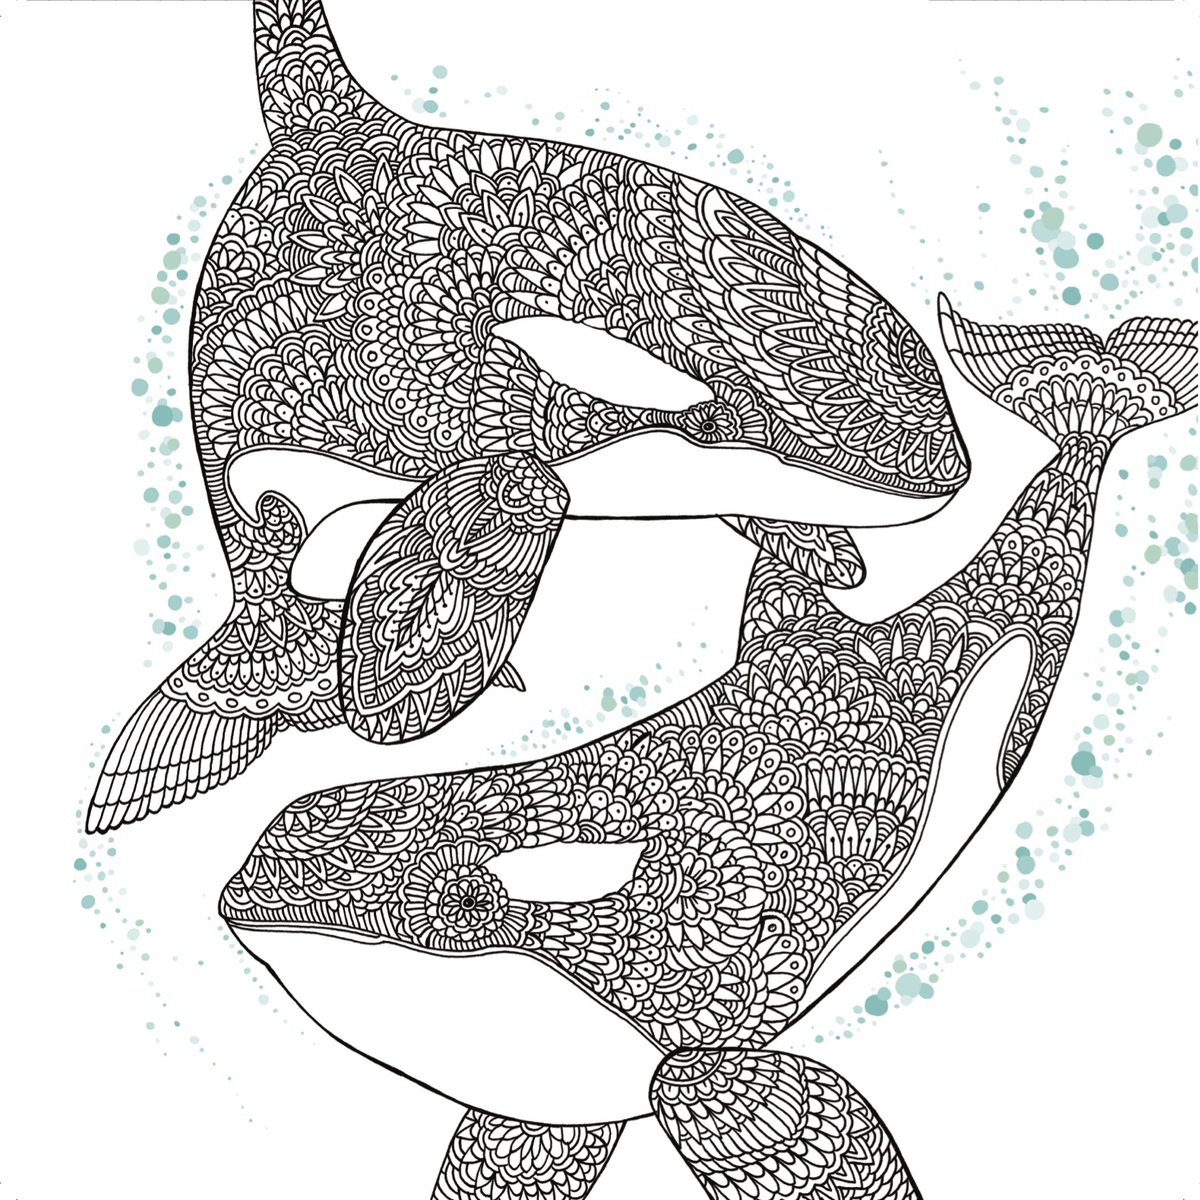 orca whale free coloring book page craftfoxes